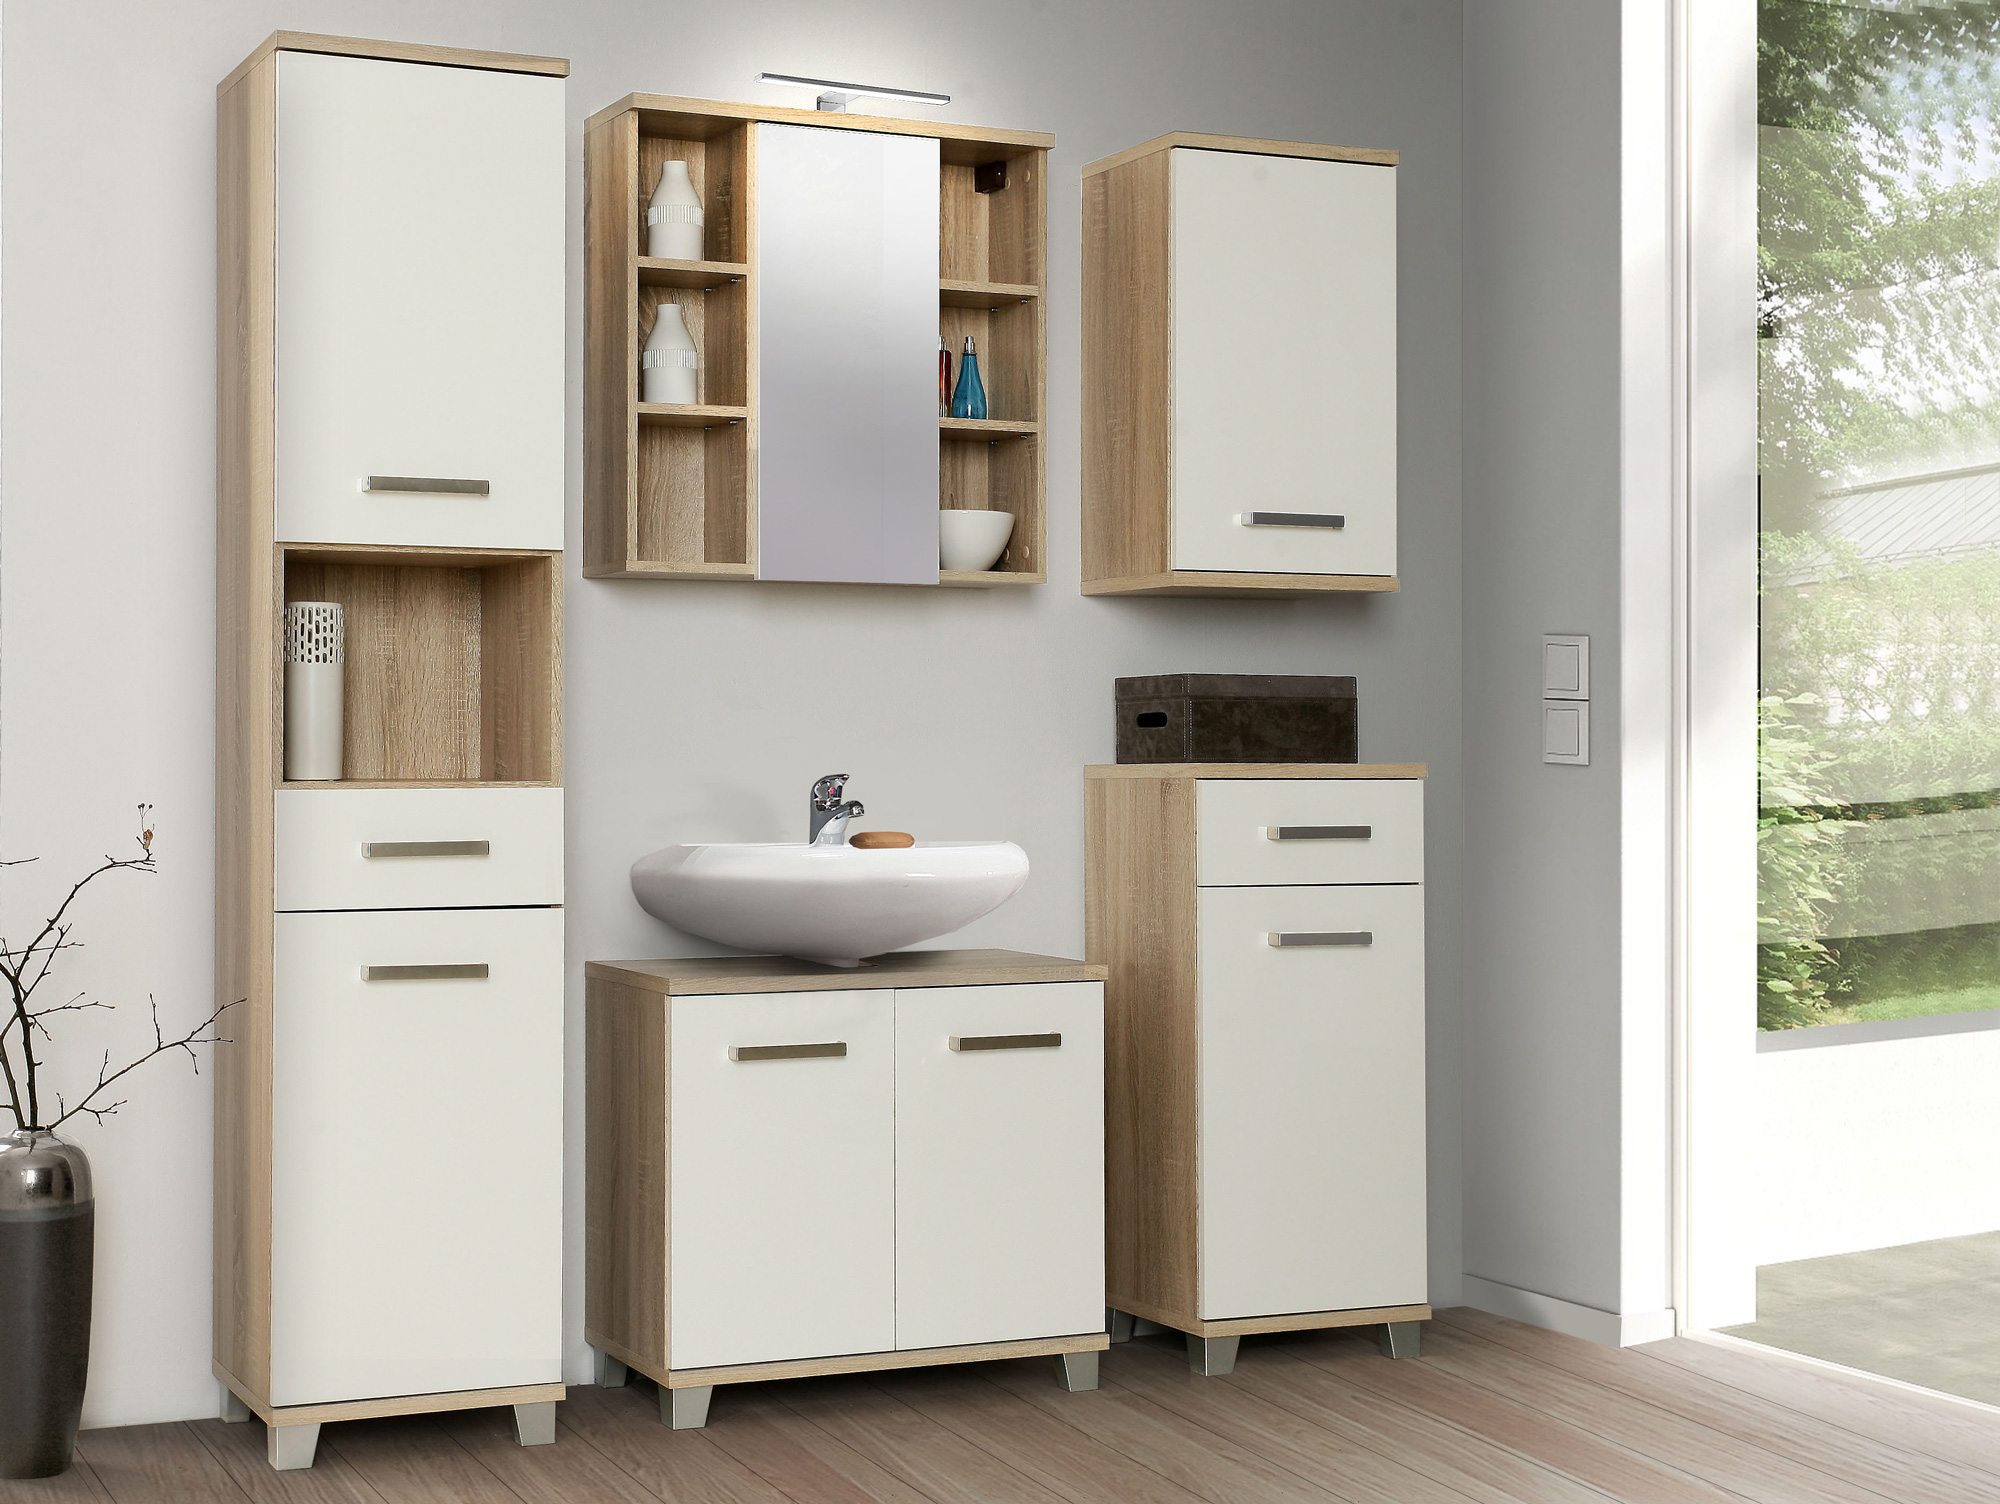 venus spiegelschrank mit spiegel eiche weiss hg. Black Bedroom Furniture Sets. Home Design Ideas